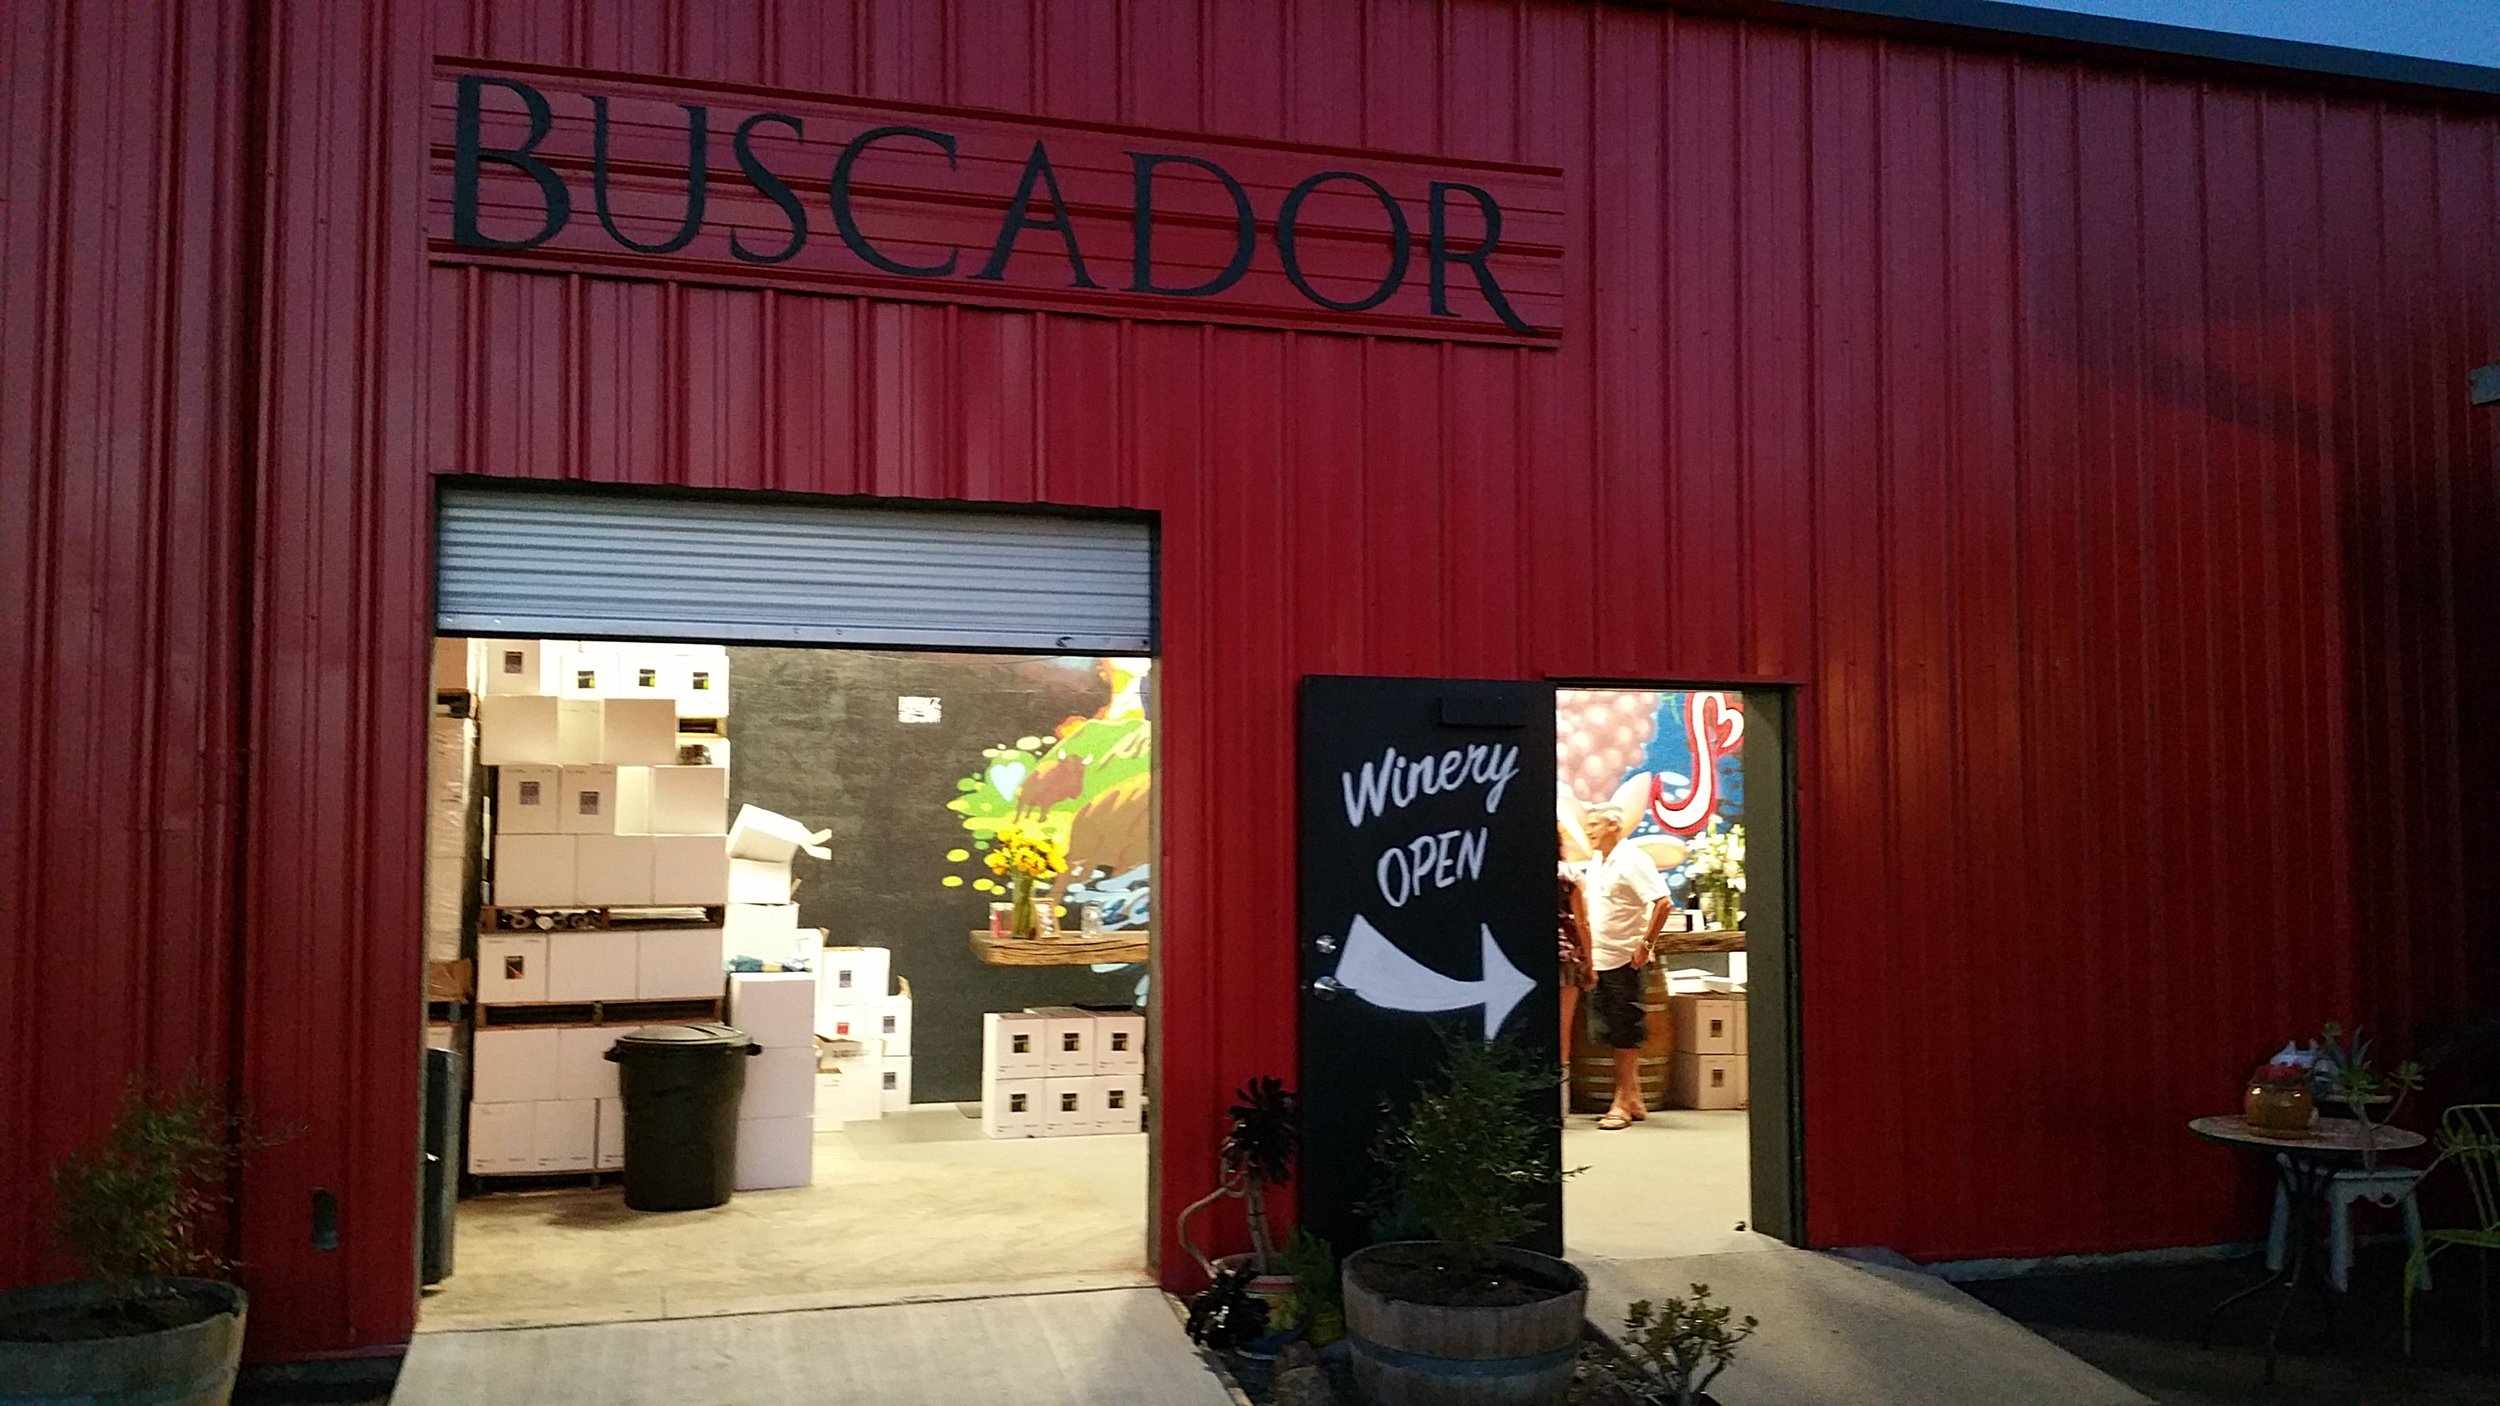 The buscador tasting room